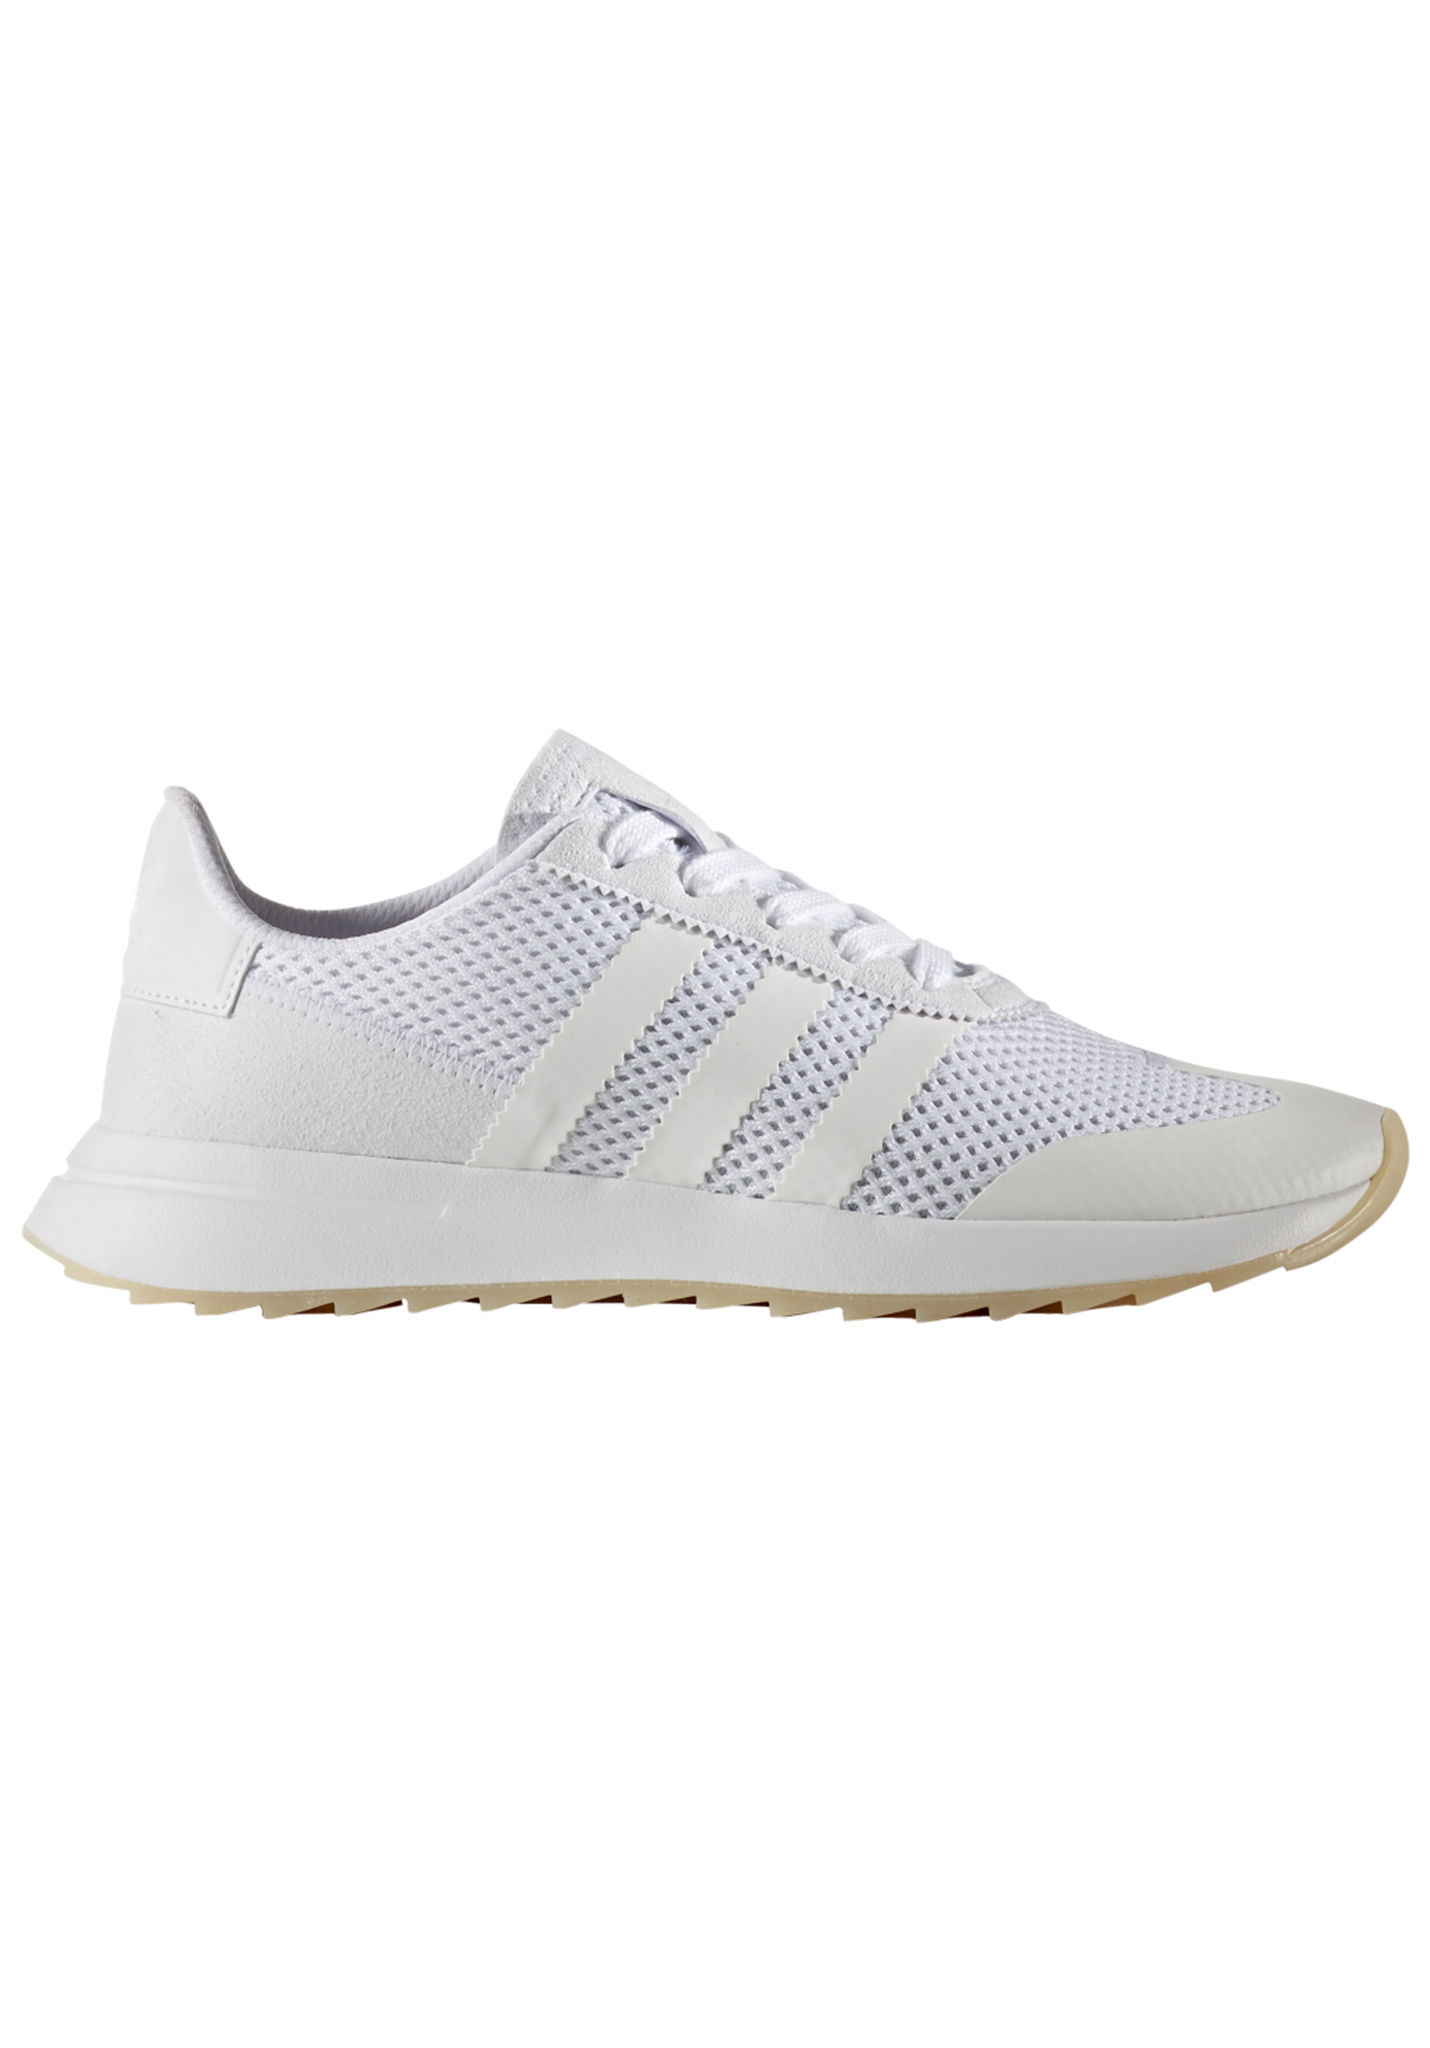 e9c775dc794 ADIDAS ORIGINALS Flashback - Sneakers voor Dames - Wit - Planet Sports